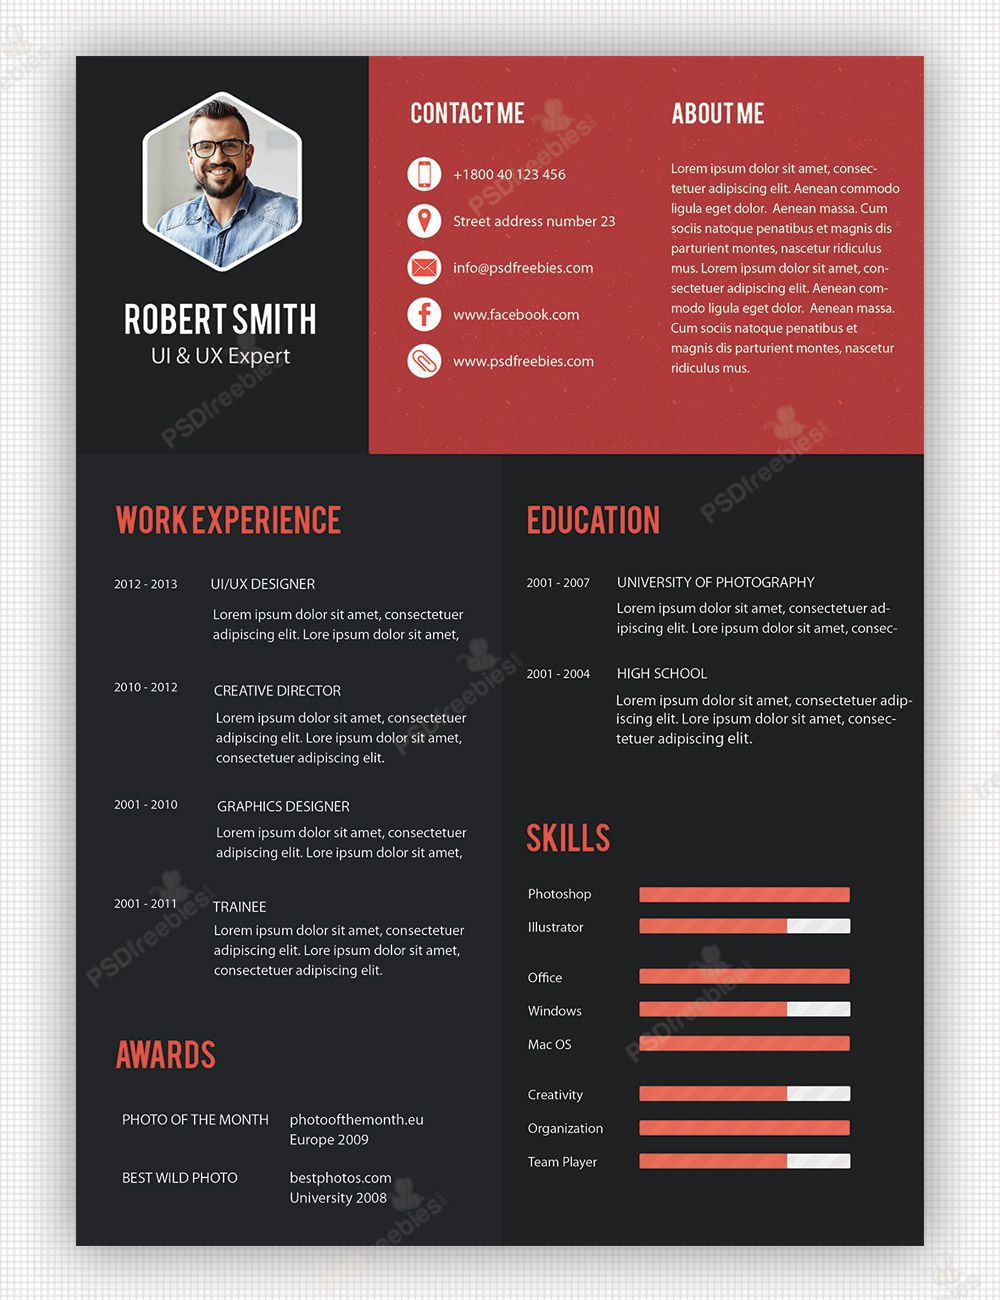 005 Marvelou Creative Cv Template Photoshop Free Picture Full